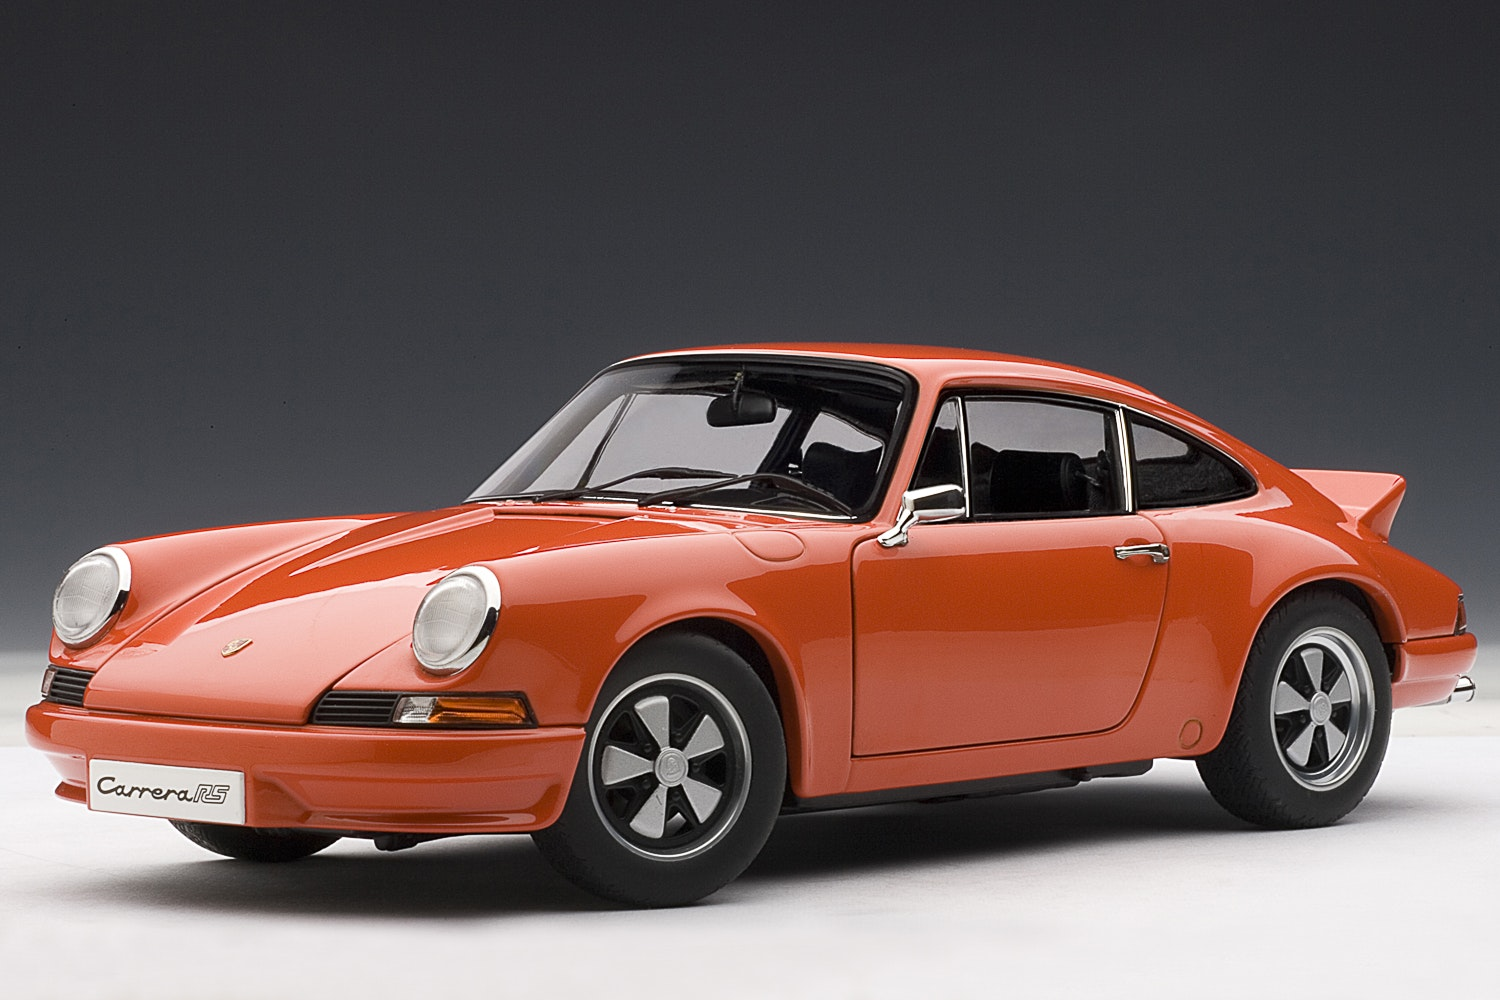 Porsche 911 Carrera RS 2.7 1973, Orange - Standard Version